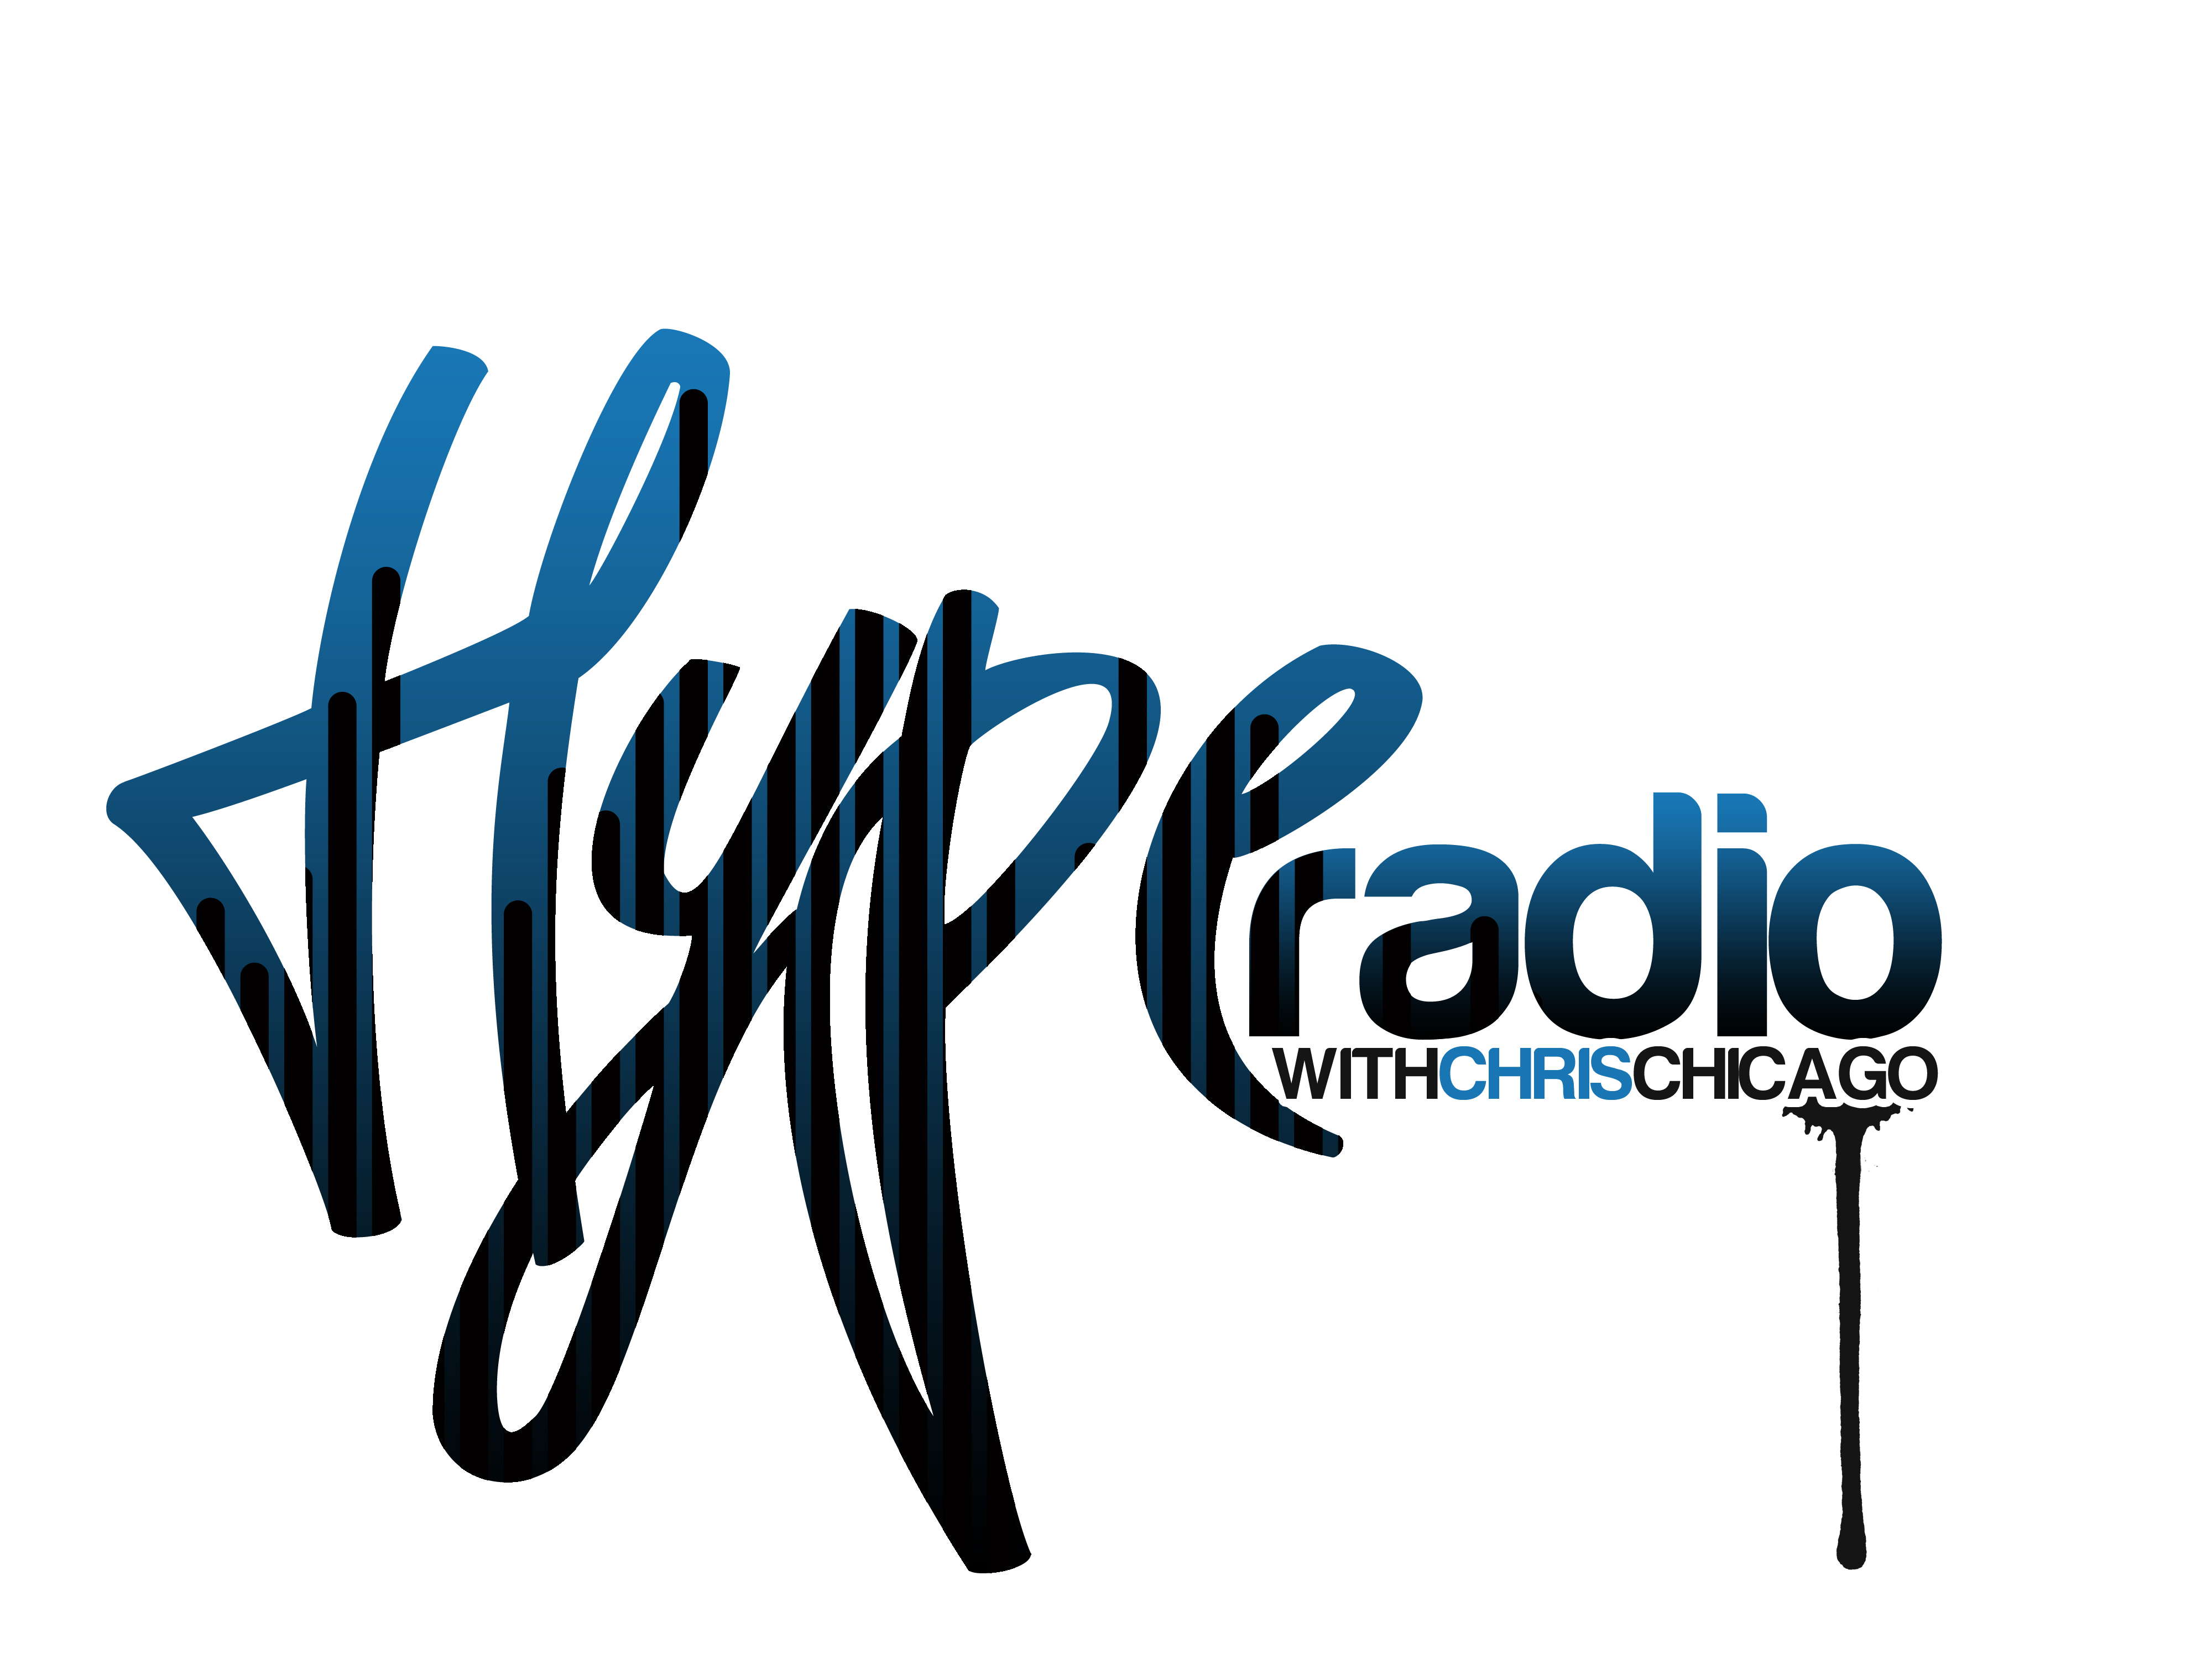 Episode 384 - Christmas Special - Hype Radio With Chris Chicago